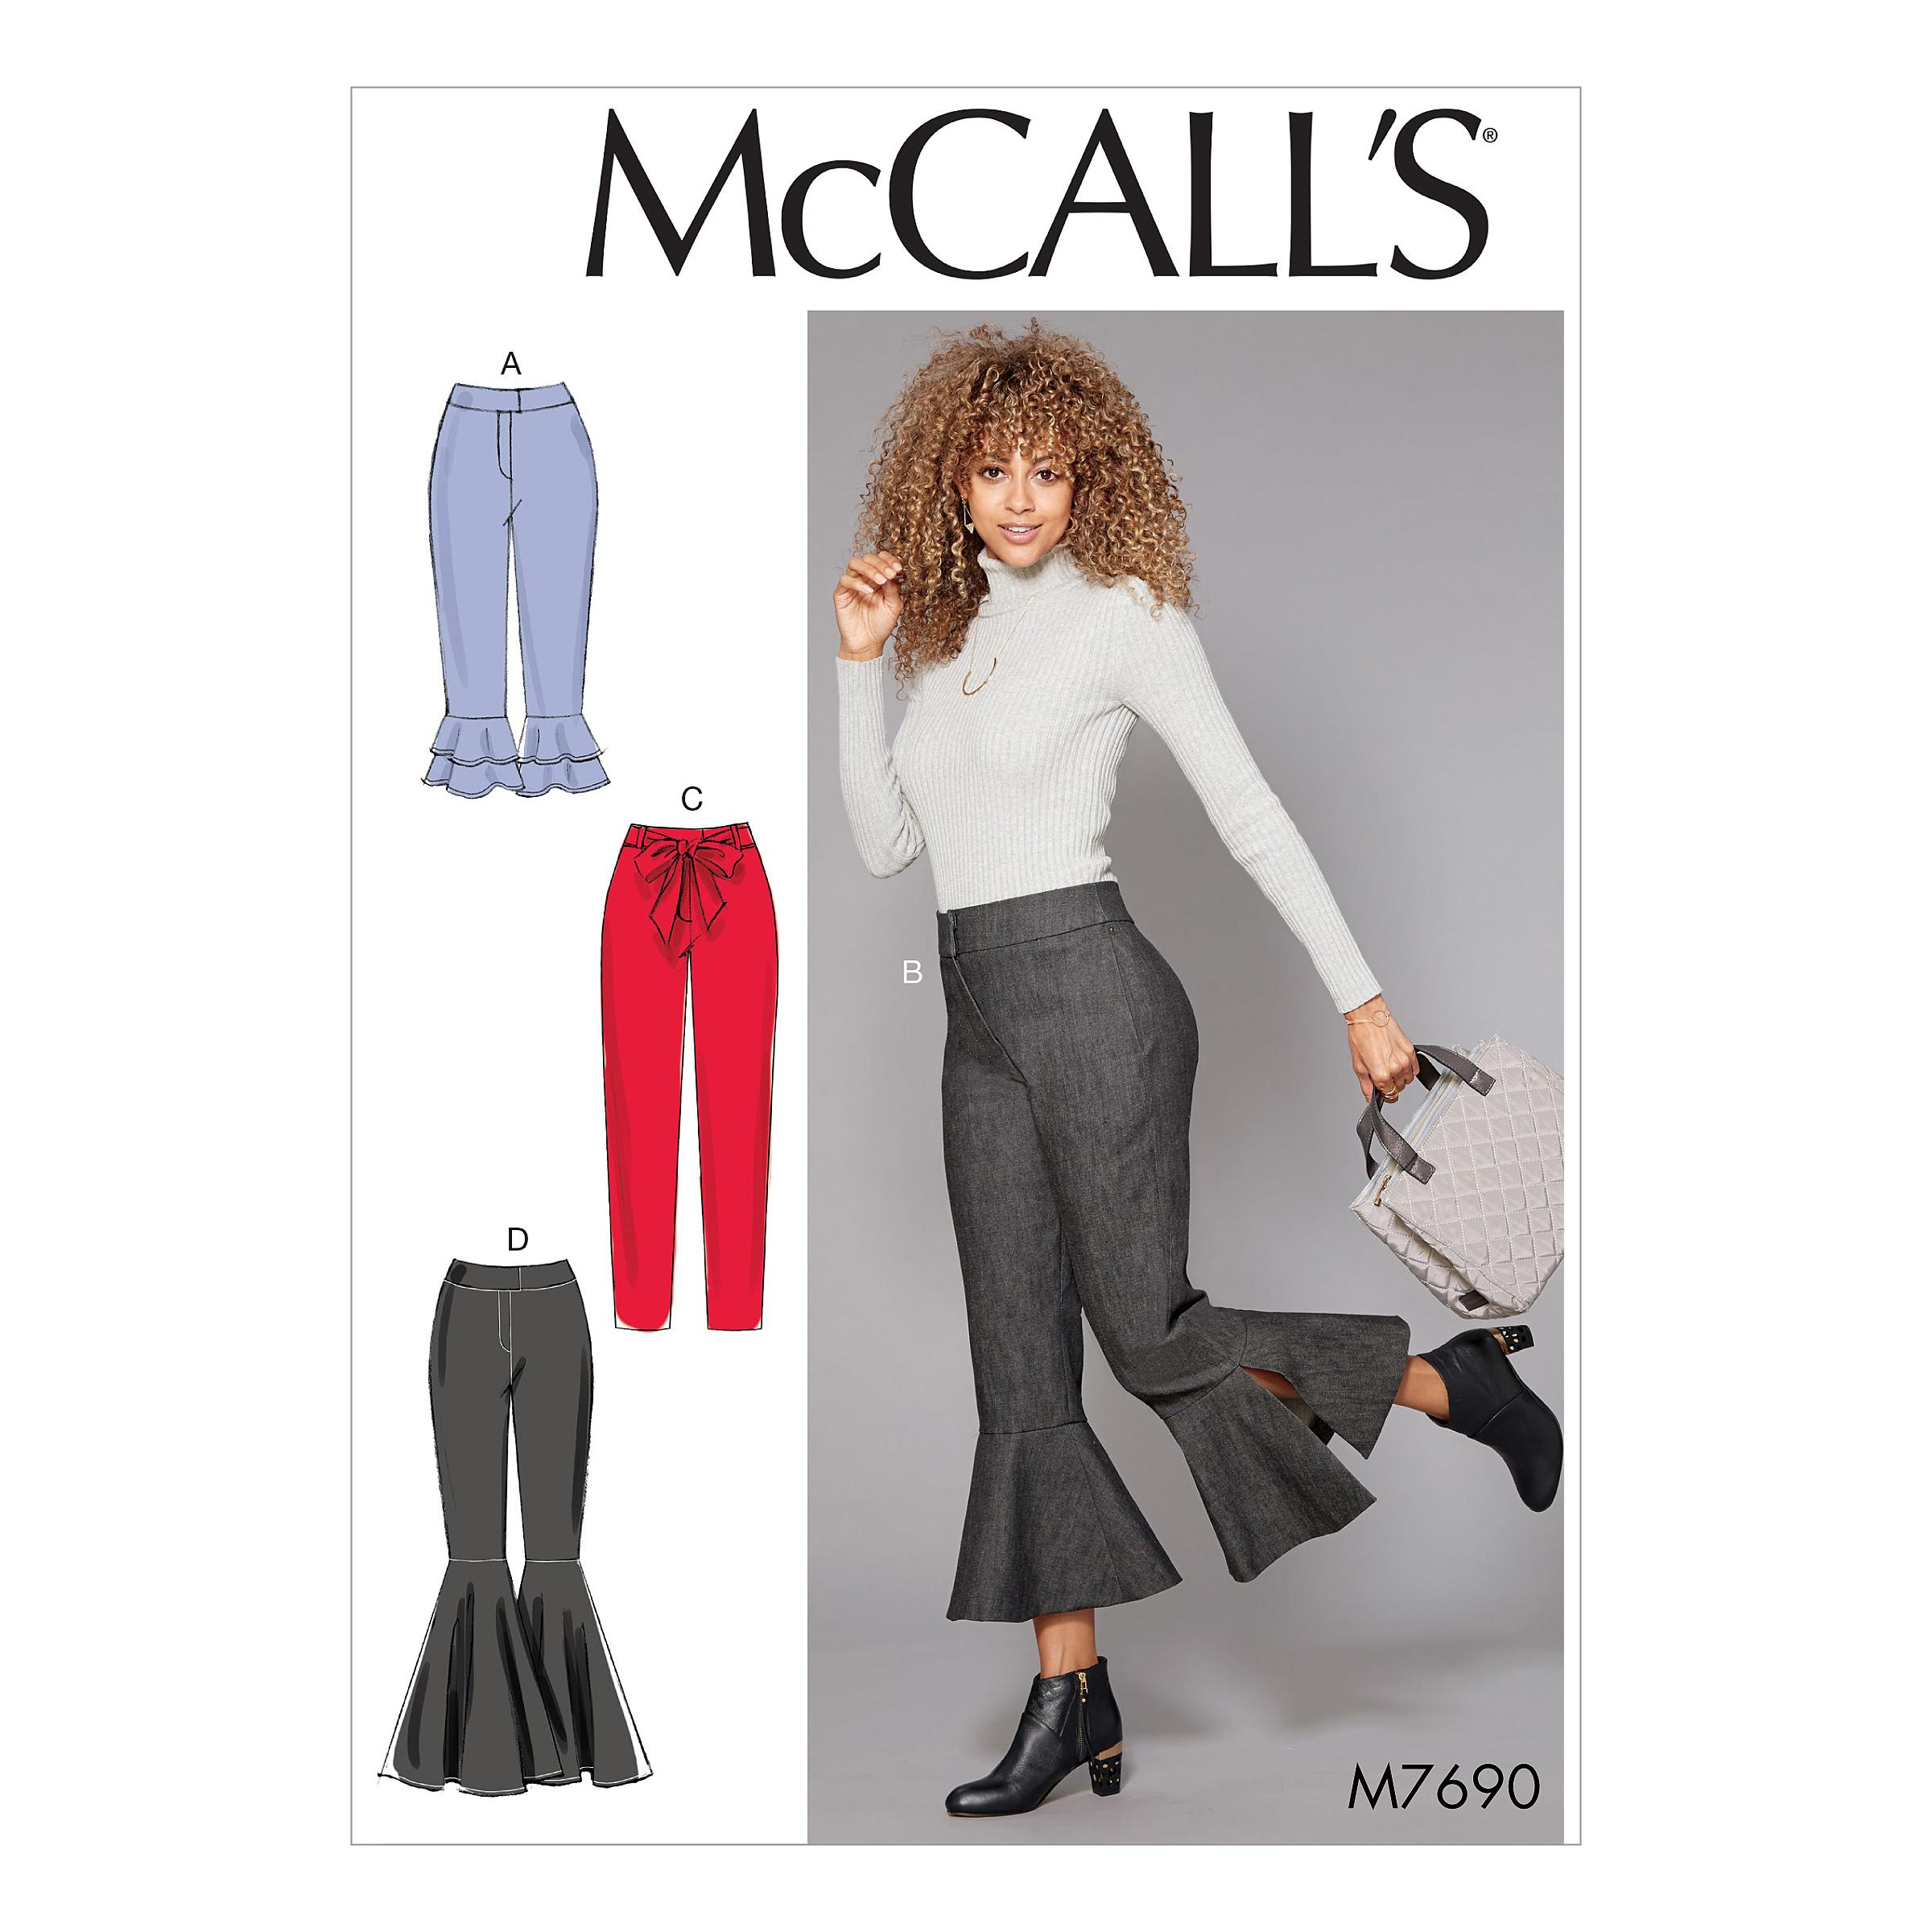 McCalls M7690 Pants, Jumpsuits & Shorts